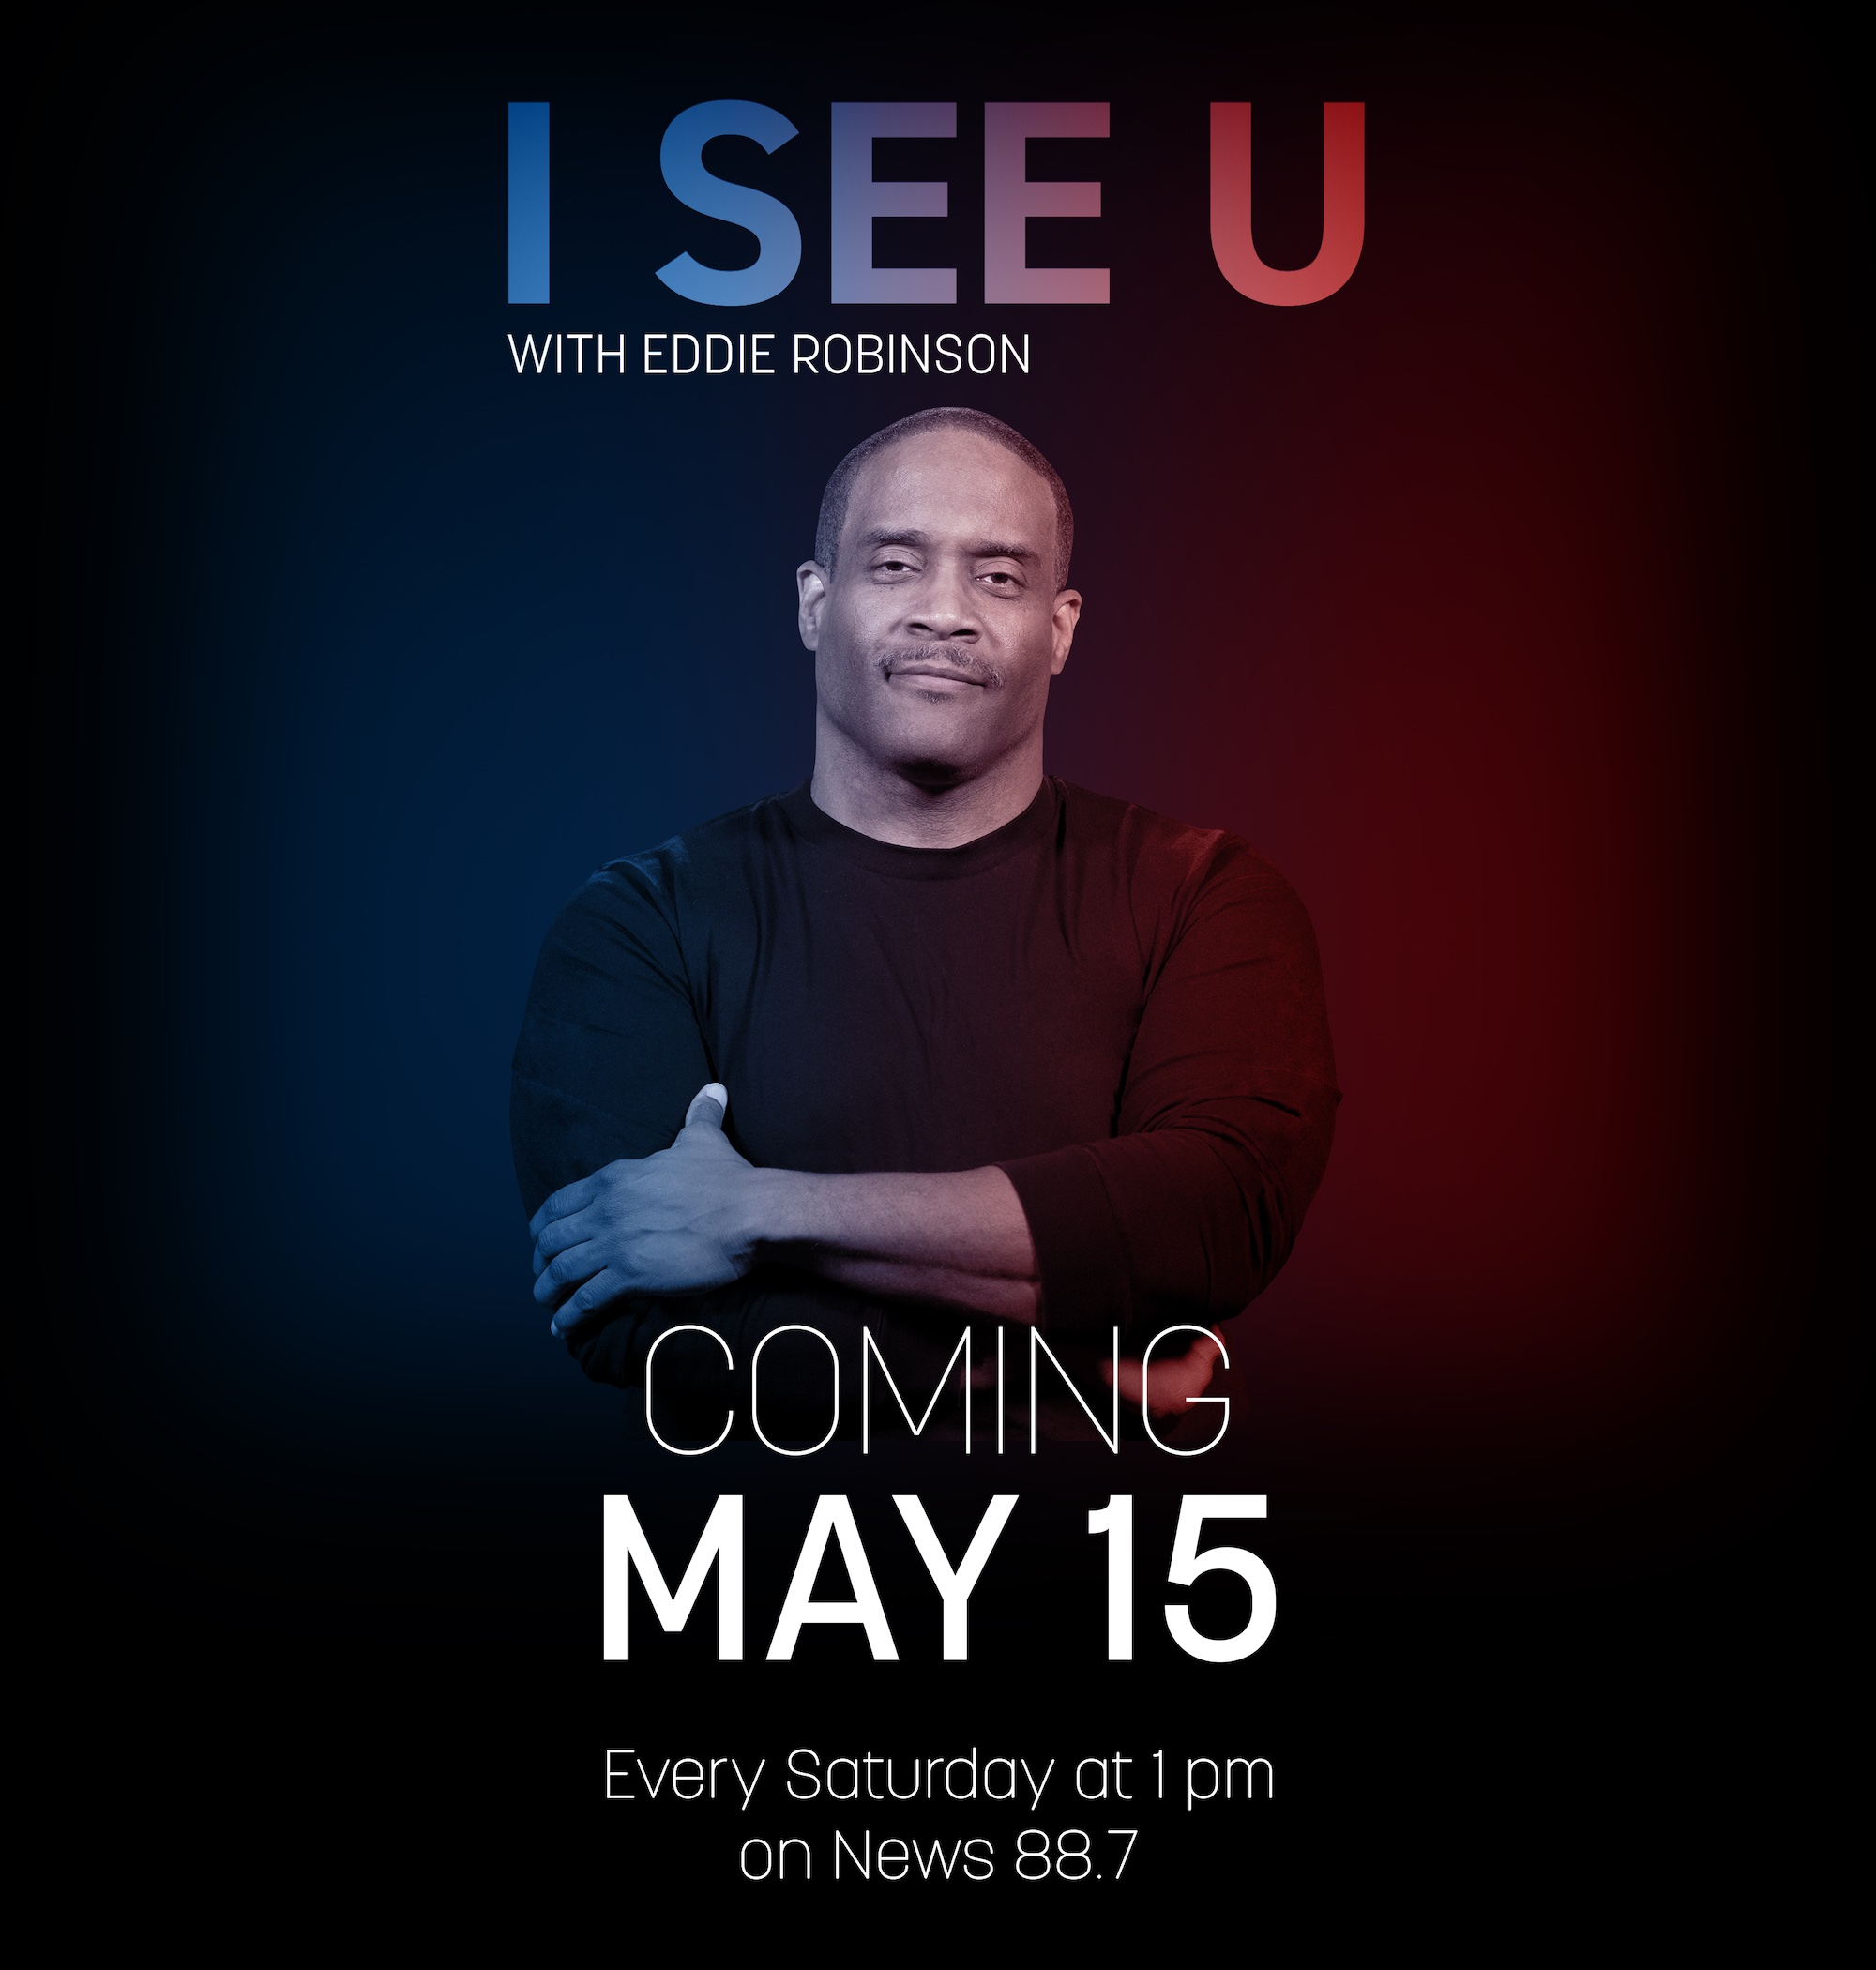 I See U with Eddie Robinson. Coming May 15. Every Saturday at 1pm on News 88.7